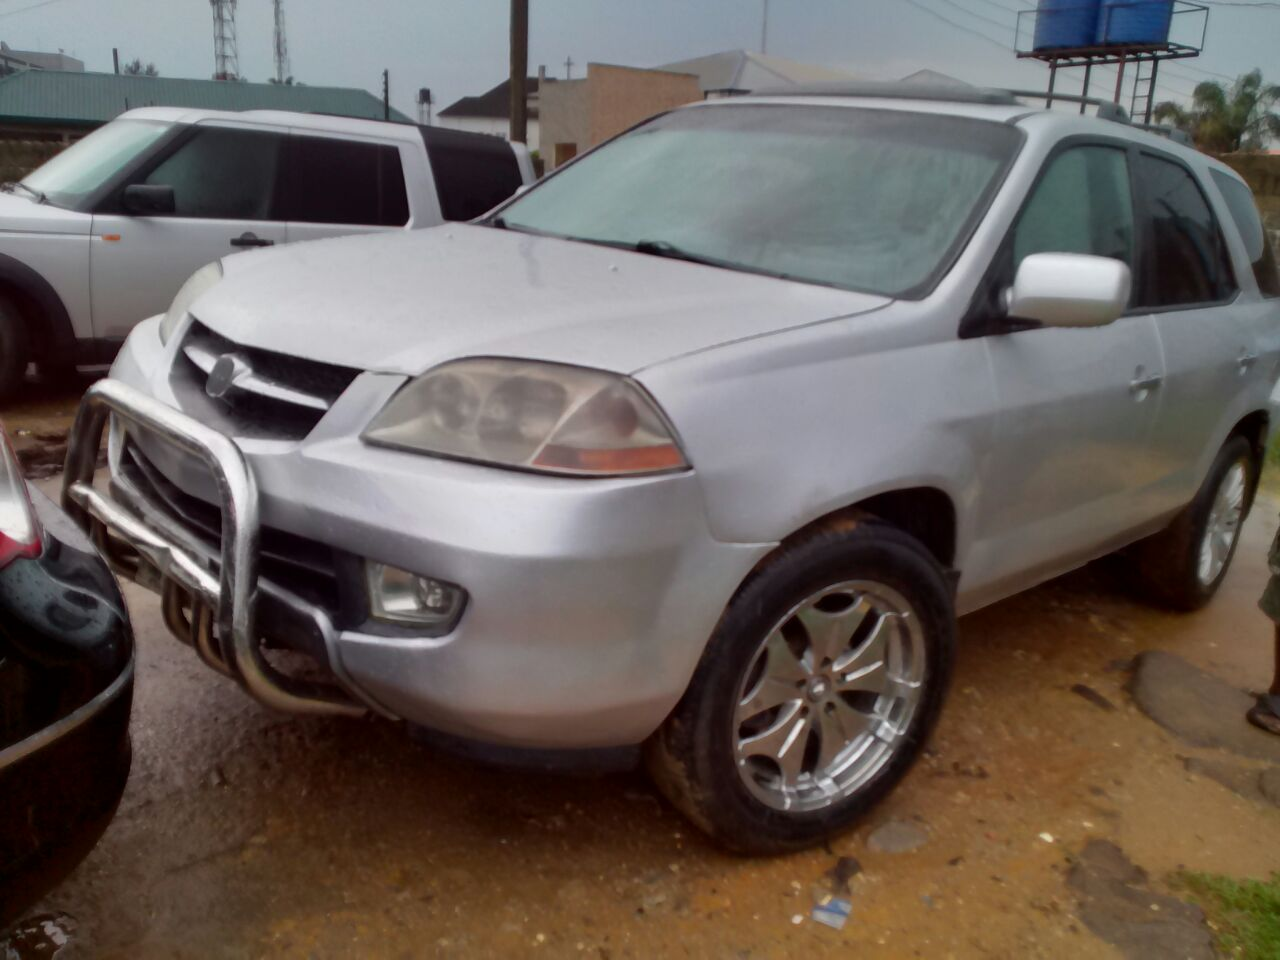 Registered Acura Mdx For Cheap Sale In PHC Autos Nigeria - Cheap acura for sale